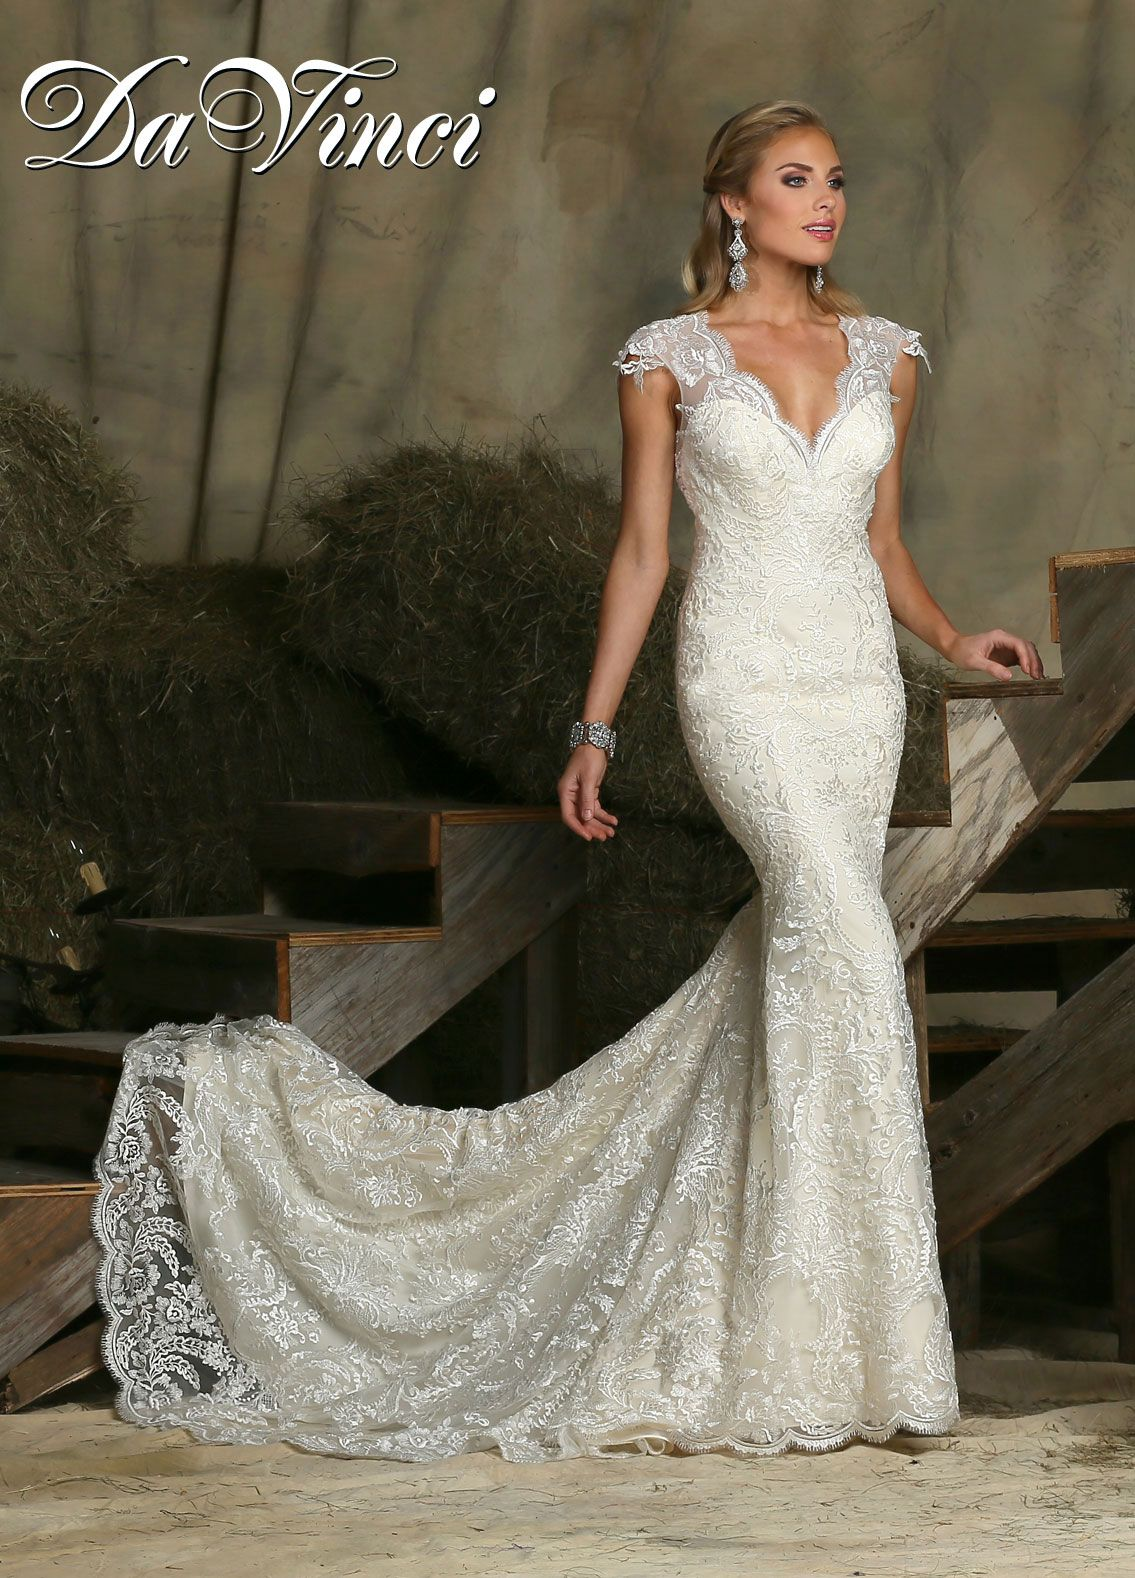 DaVinci Bridal Style 50329 is a Vneck lace wedding dress with an ...